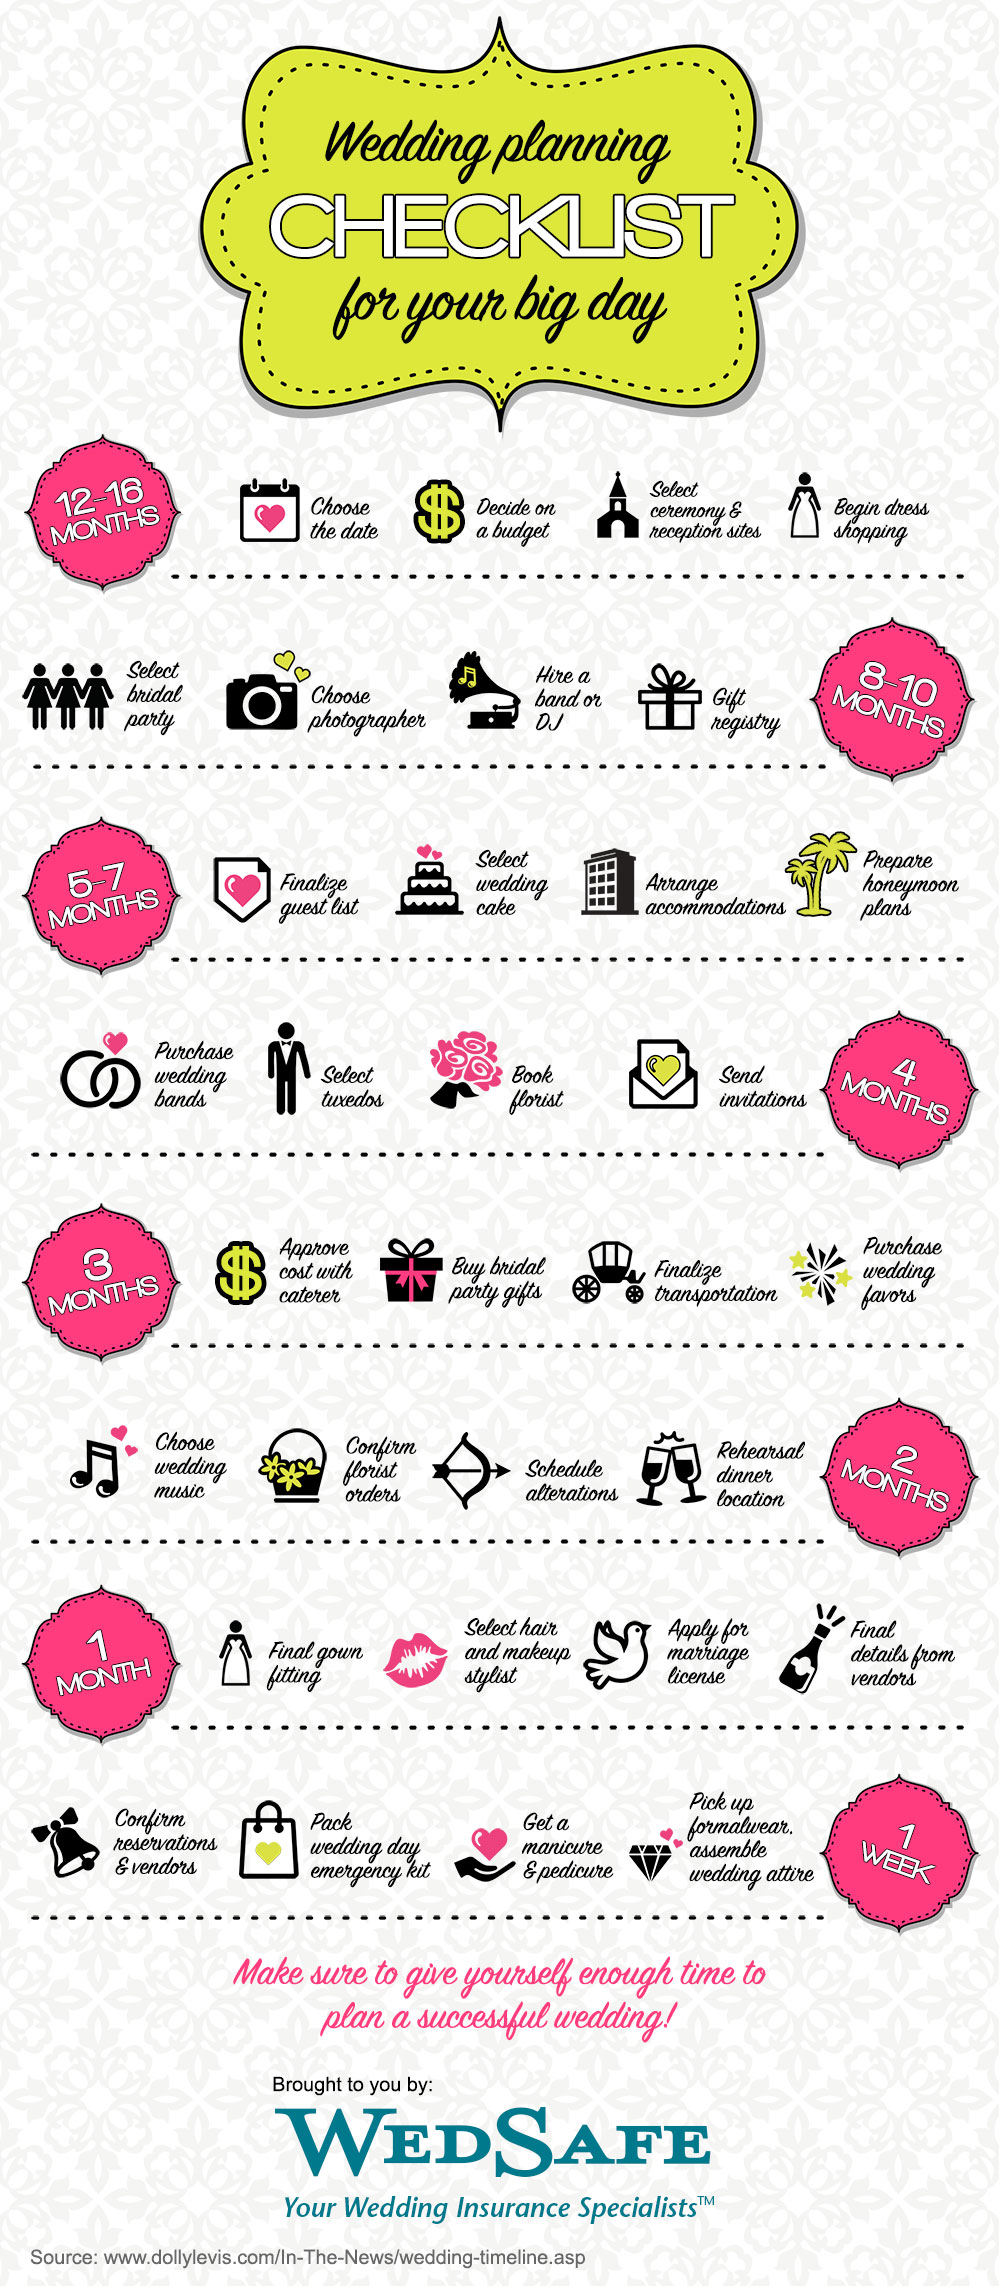 Wedding Timeline Checklist.Wedding Planning Timeline Checklist Wedsafe Wedding Insurance